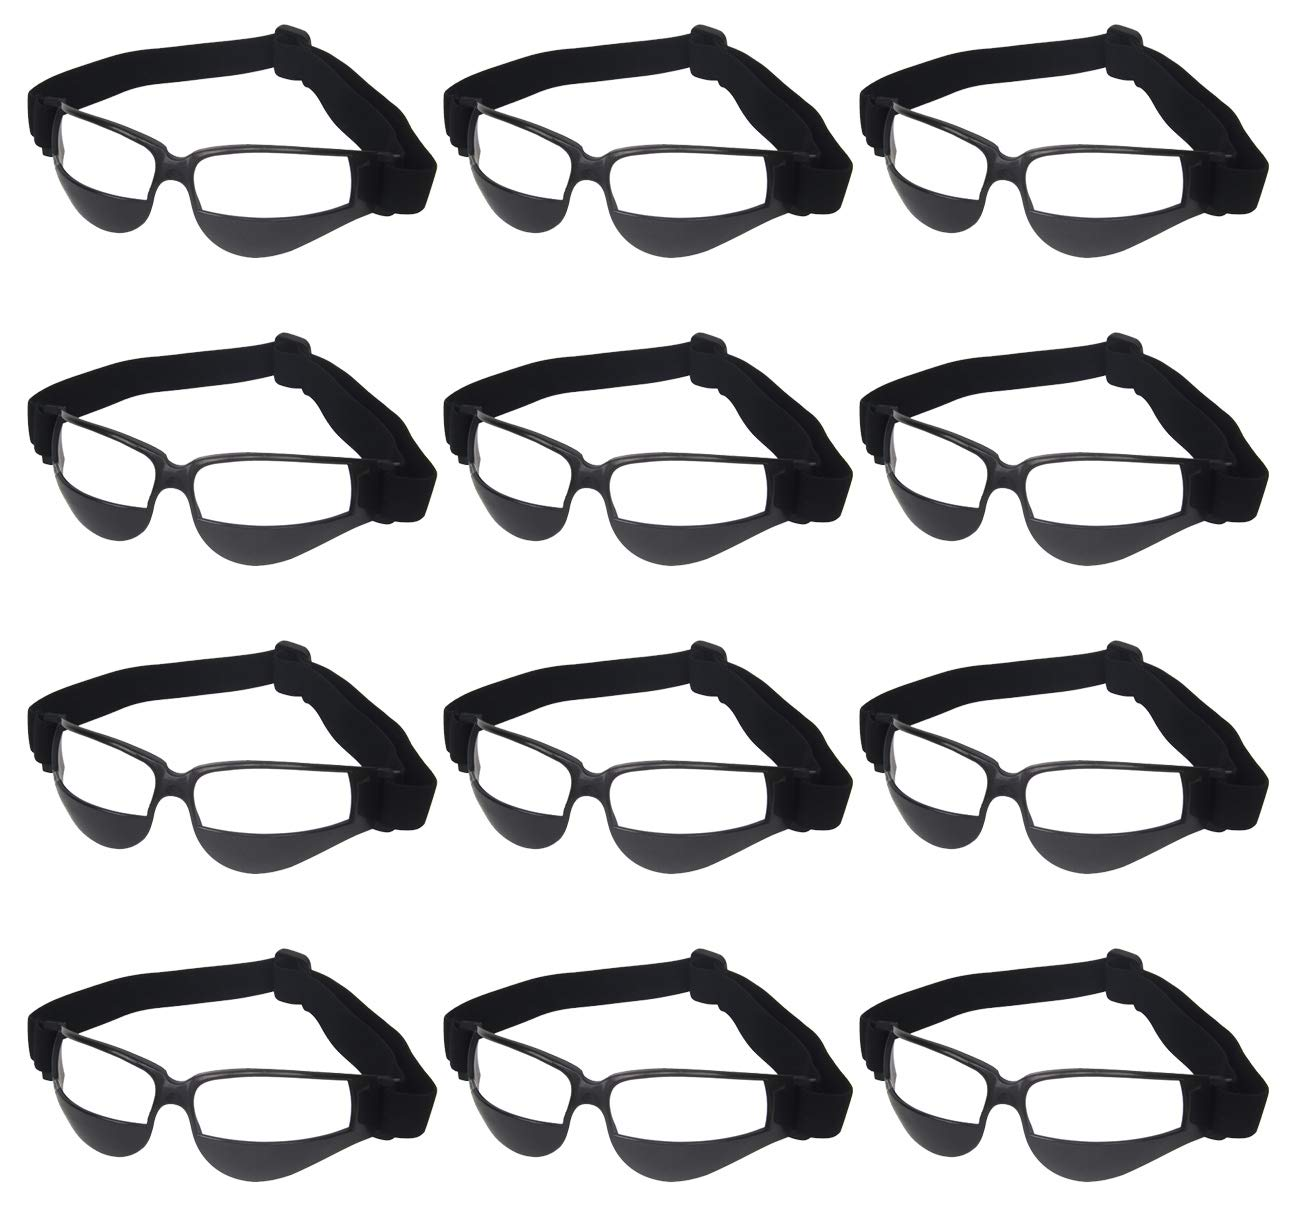 Liberty Imports Pack of 12 Basketball Dribbling Glasses No Look Eye Goggles Dribble Specs Training Aid Sports Equipment